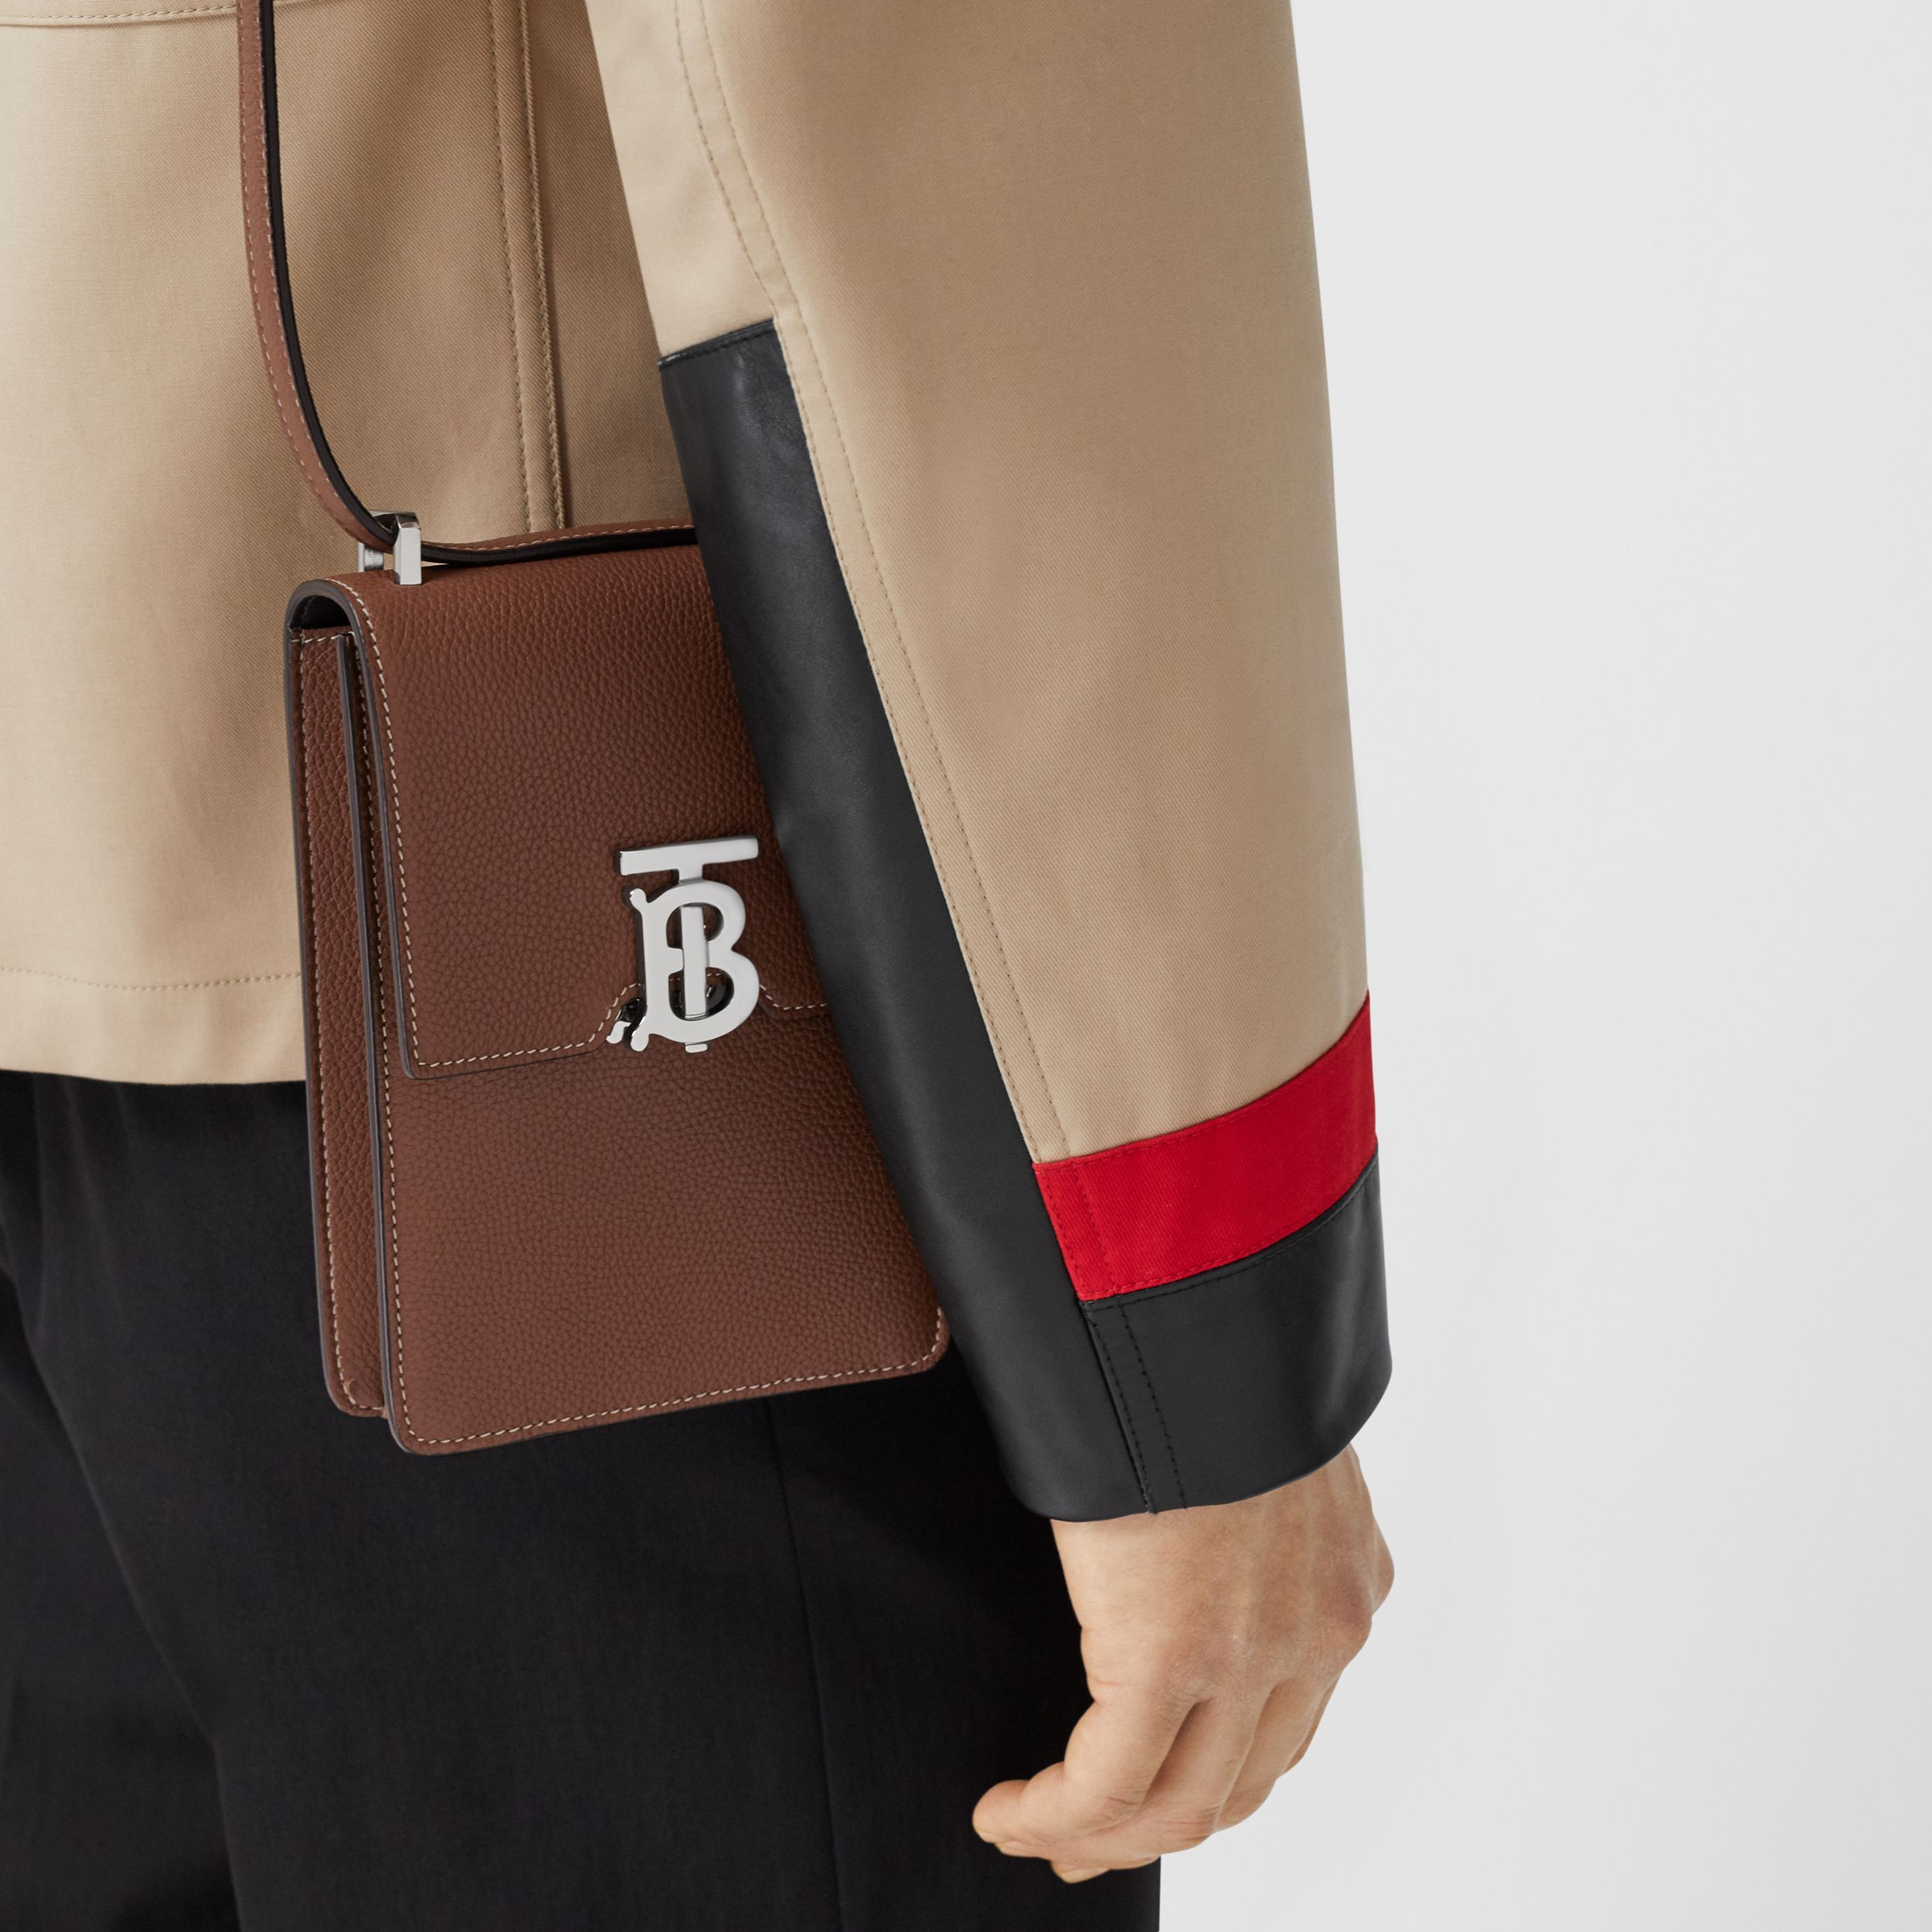 Grainy Leather Robin Bag in Tan | Burberry - 4